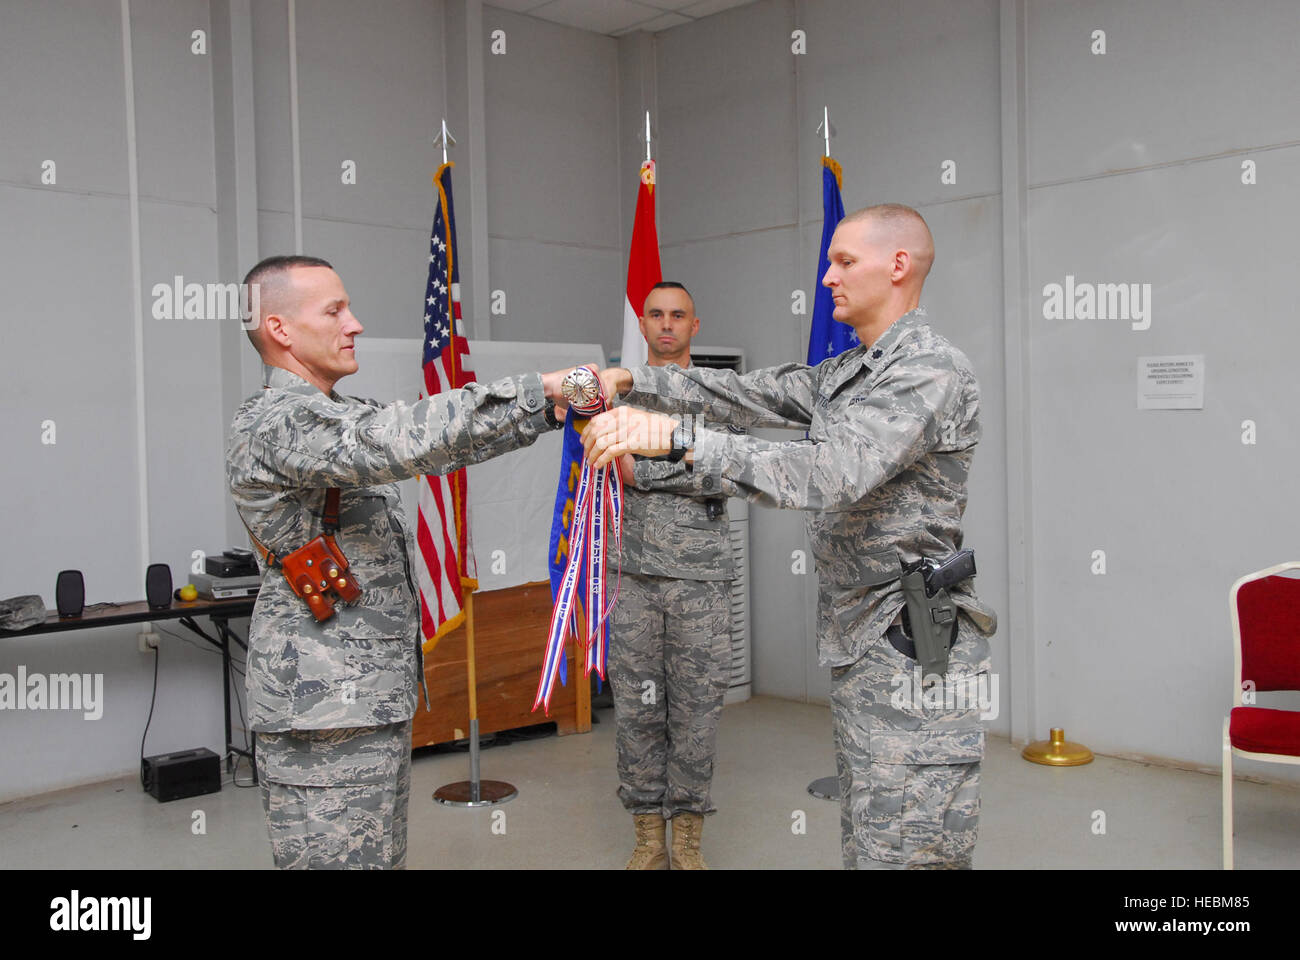 u s air force security squadron stock photos u s air force col david marttala 732nd air expeditionary group commander and lt col dustin